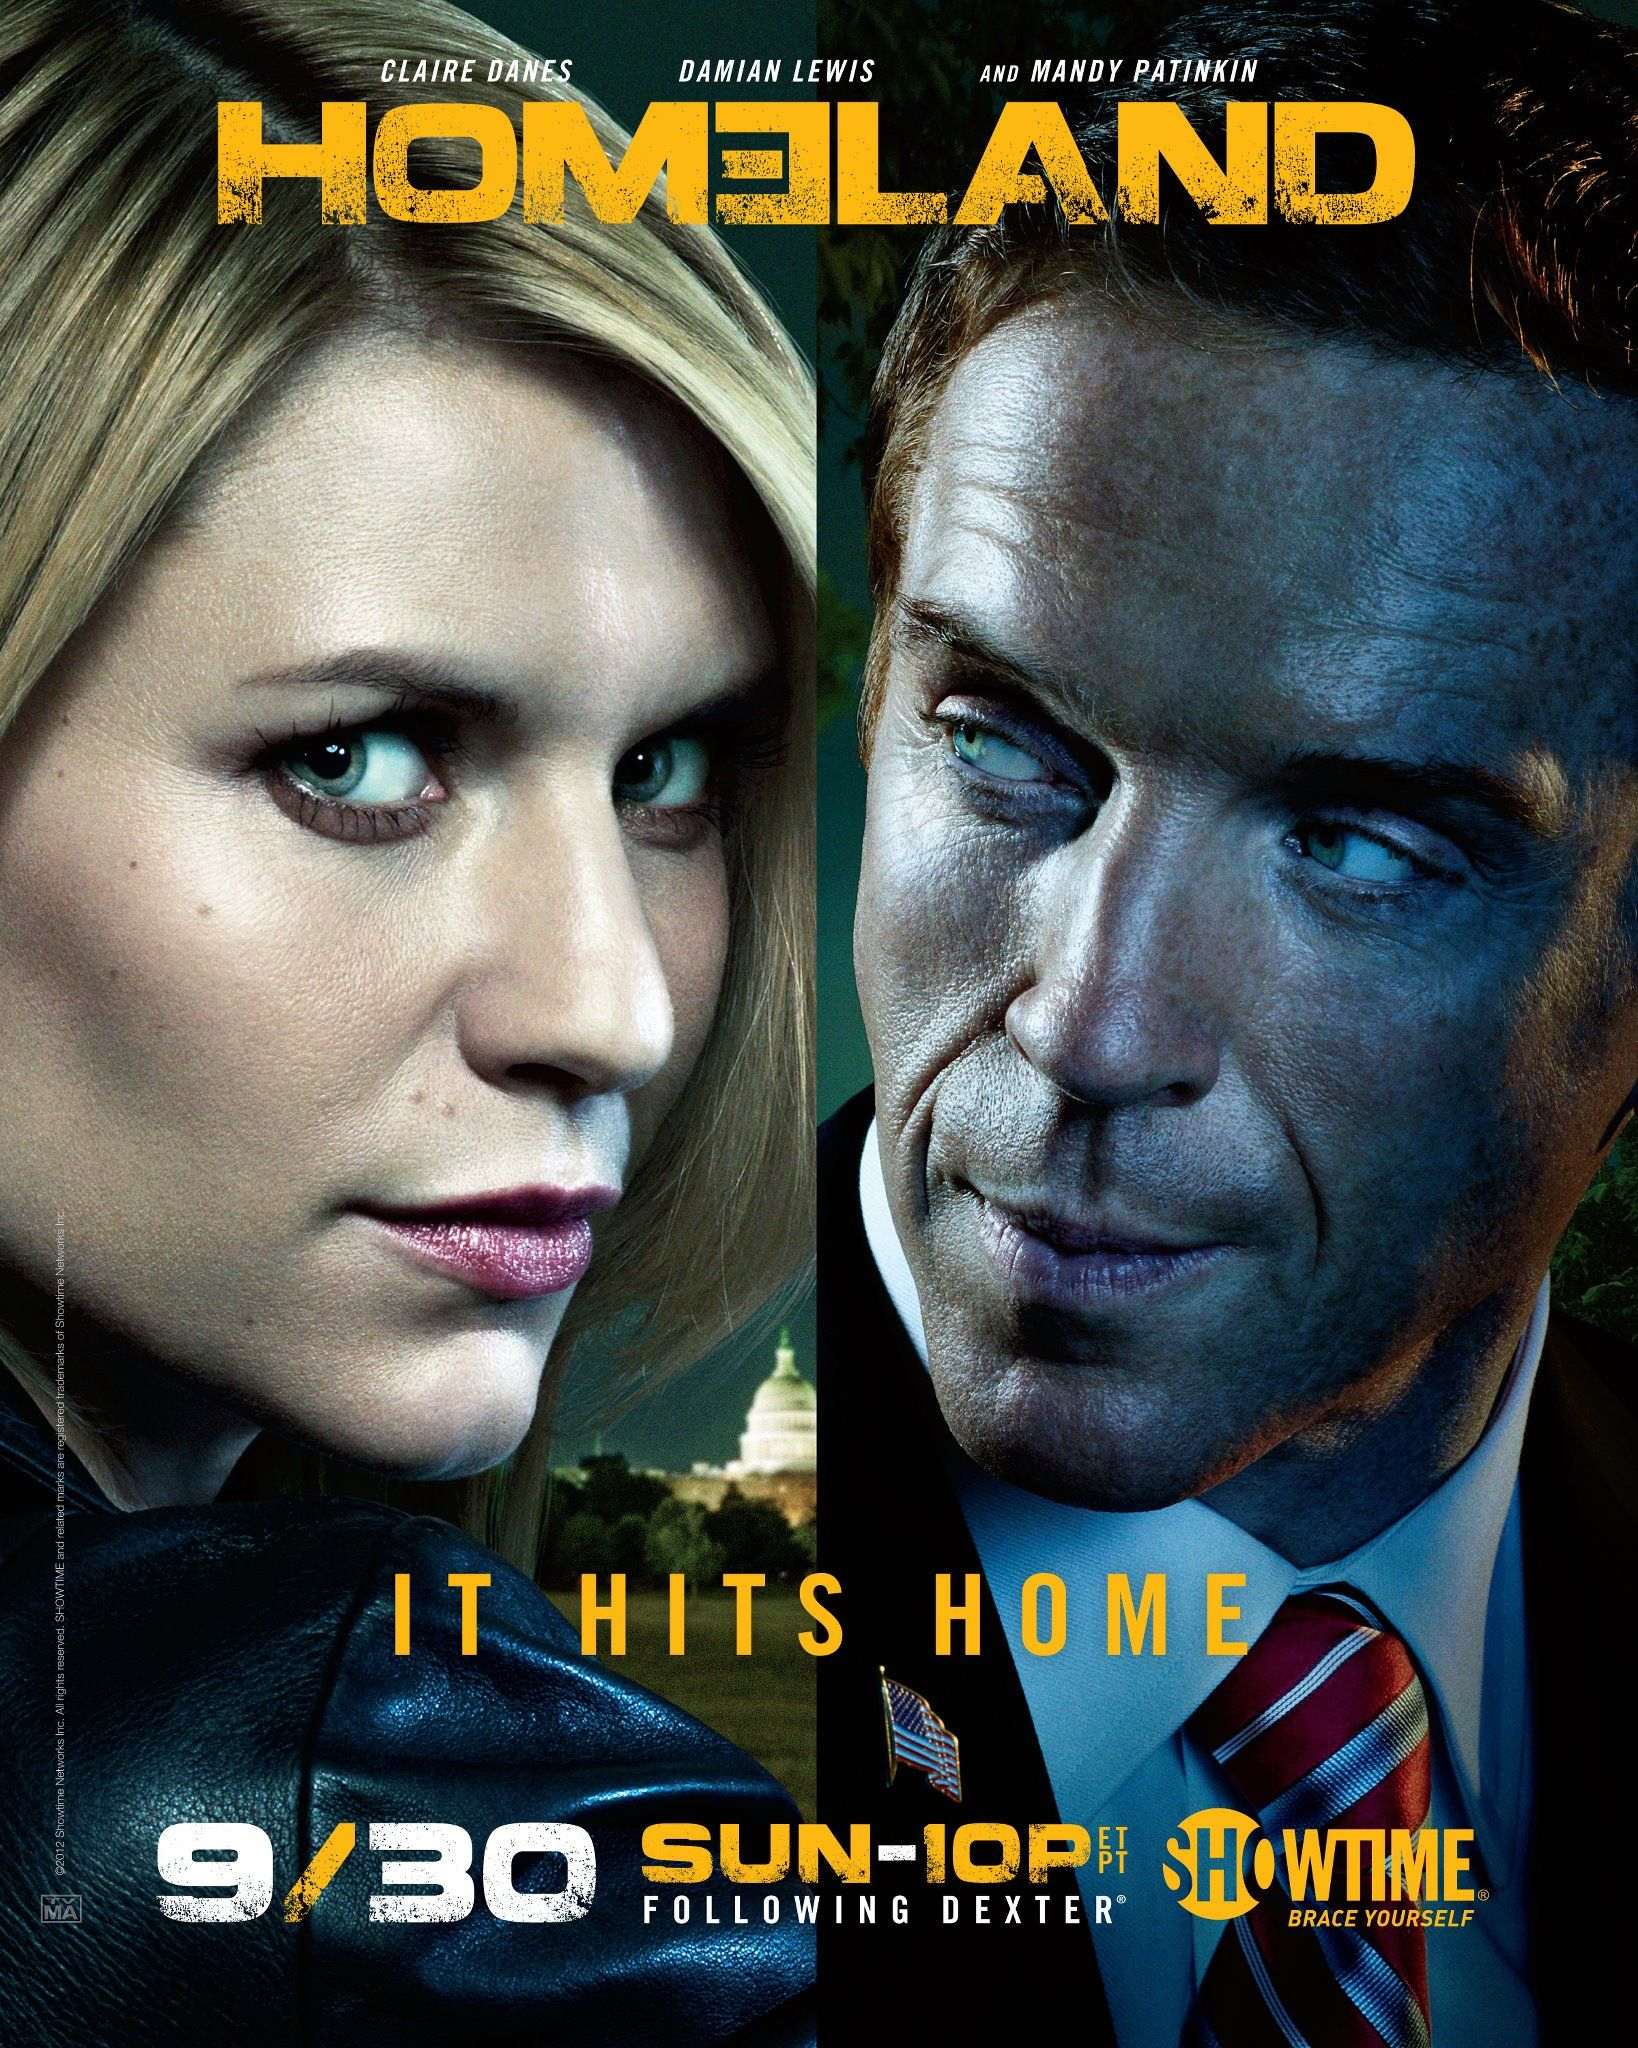 Homeland Season 2 Tv Show Trailer Poster Damian Lewis Claire